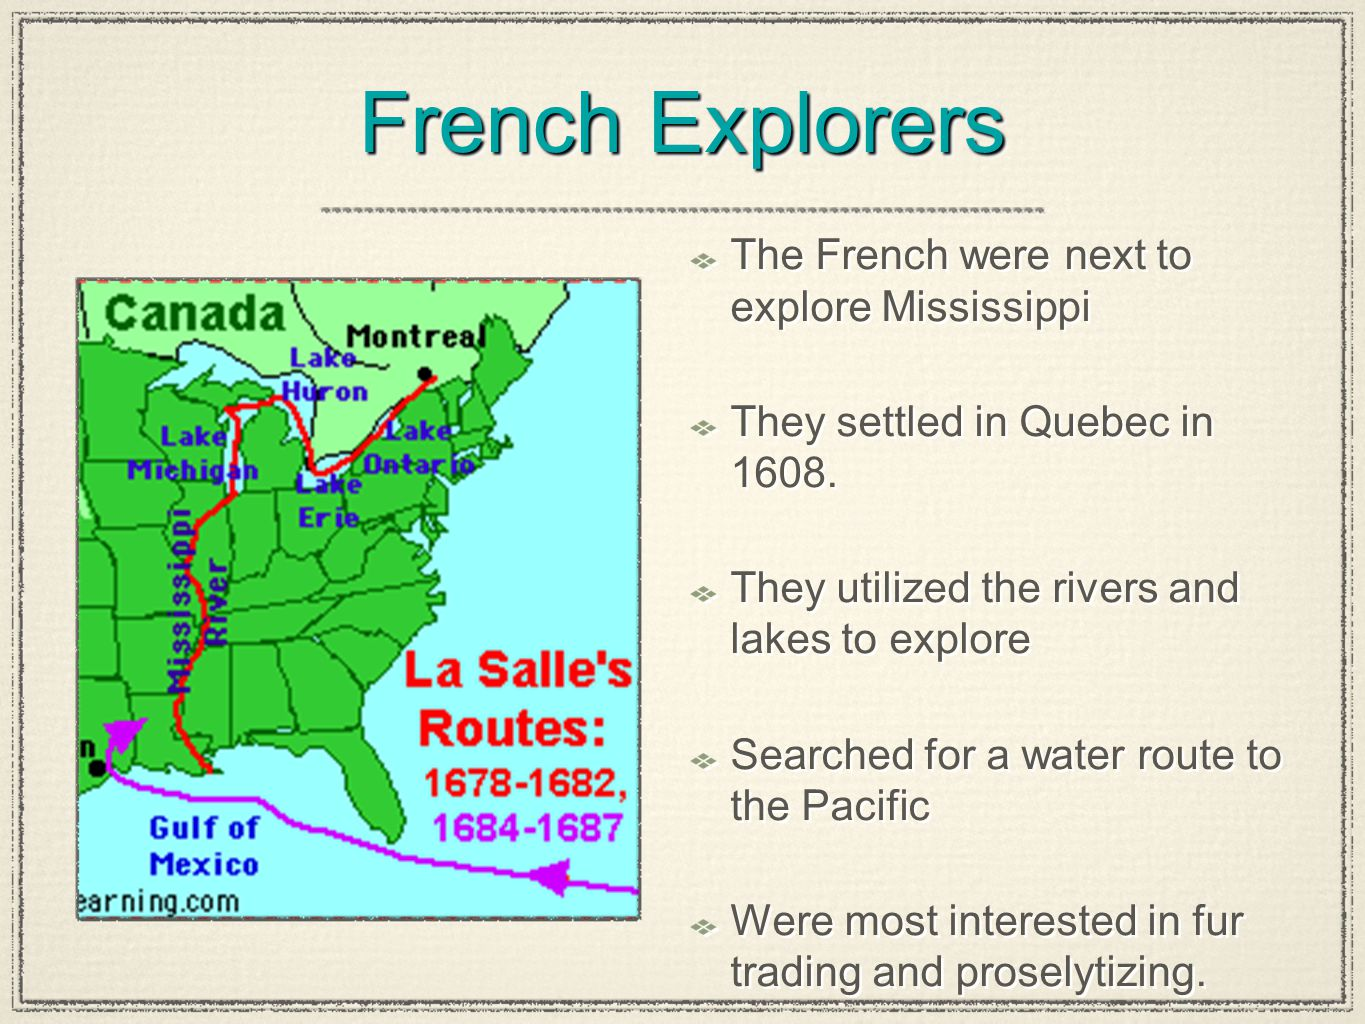 French Explorers The French were next to explore Mississippi